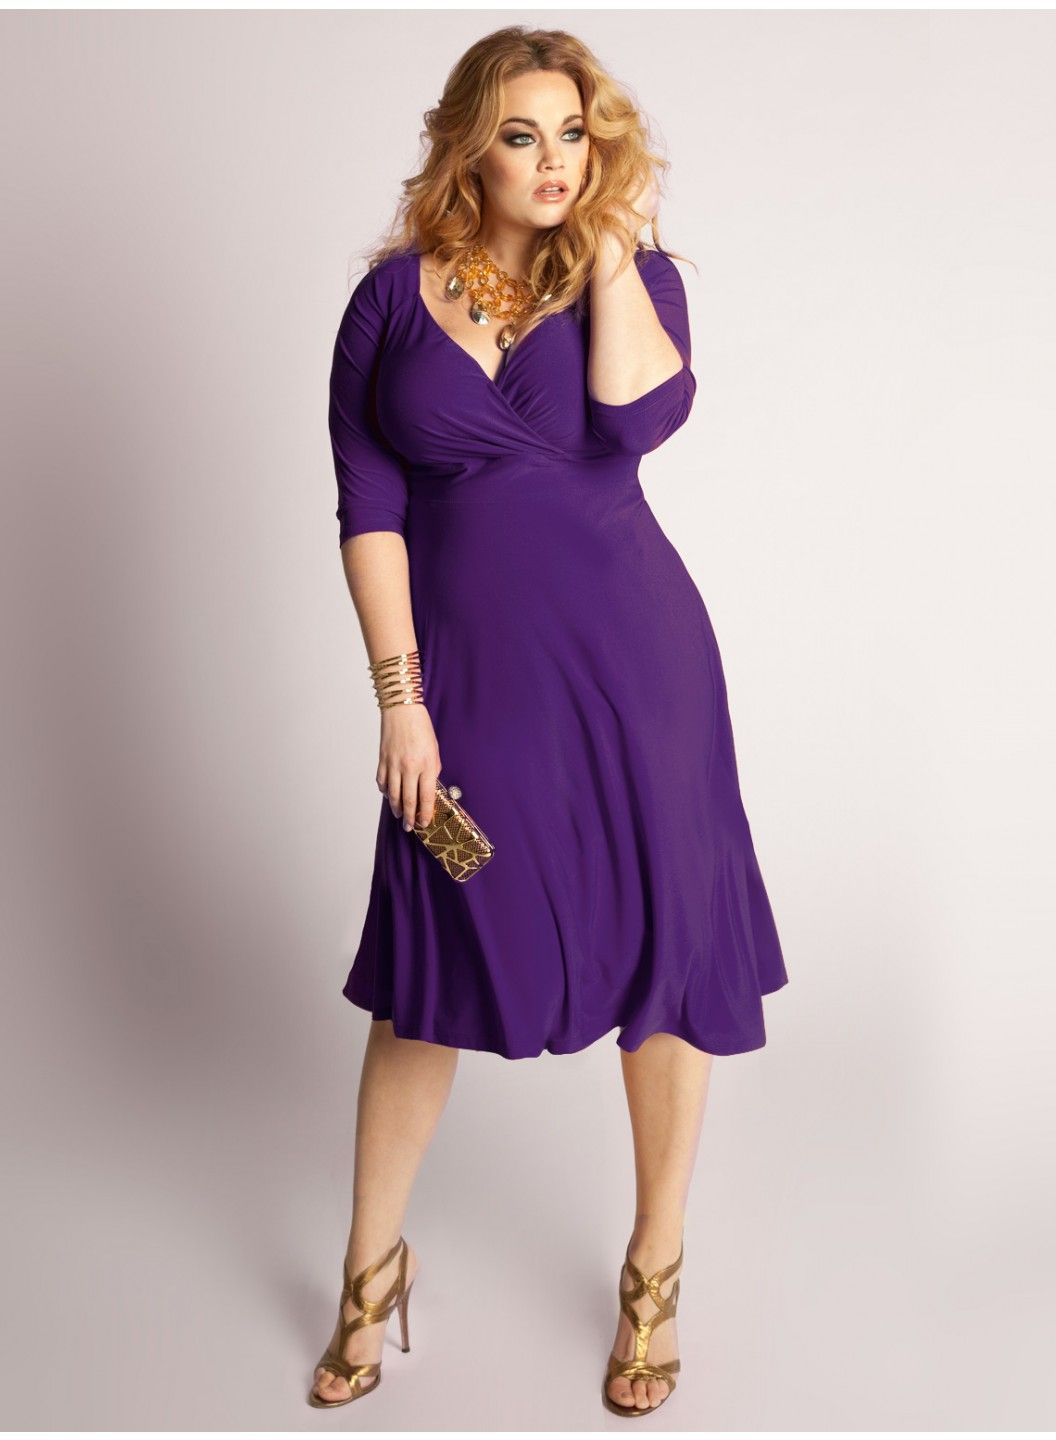 20 Plus Size Evening Dresses to Look Like Queen | Amethysts ...